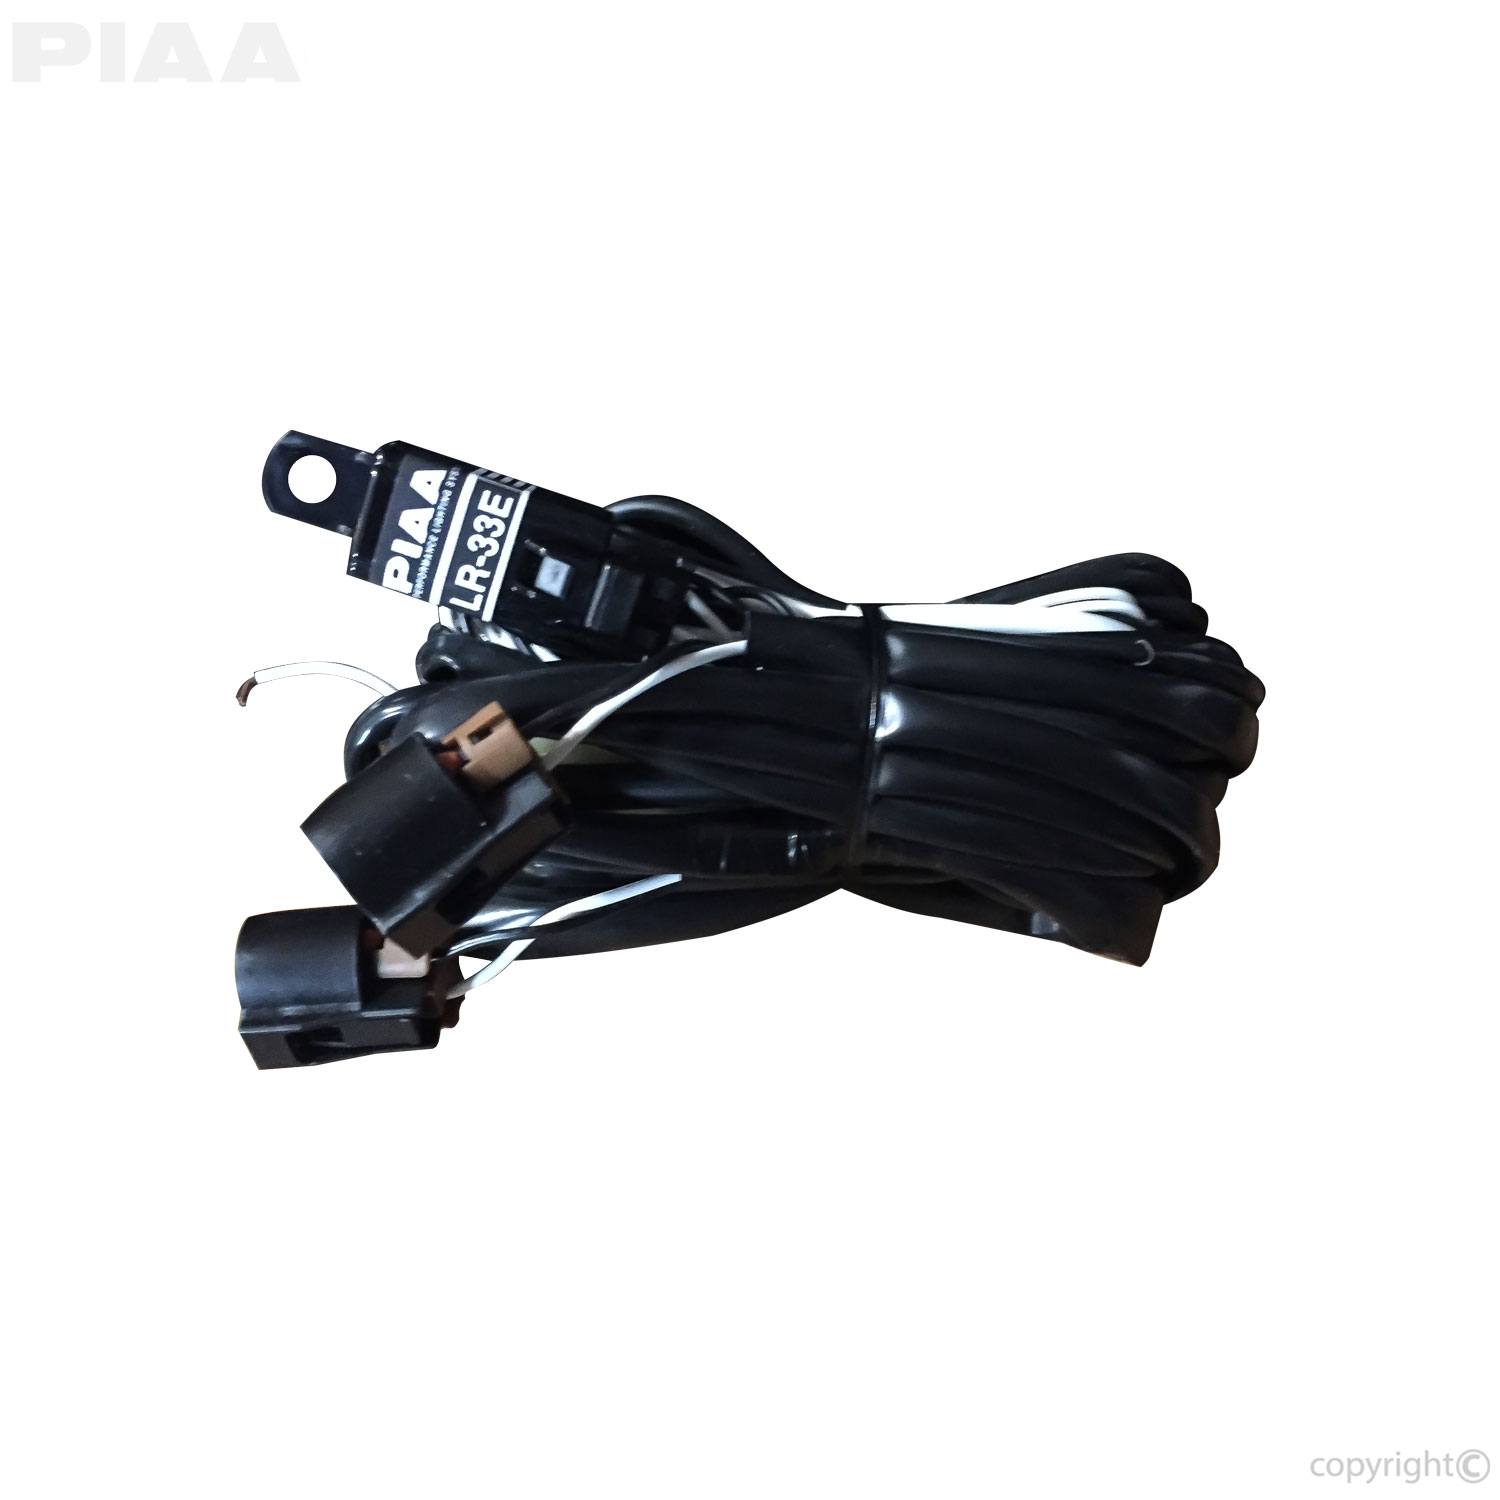 piaa 34087 410 harness hr?bw=1000&w=1000&bh=1000&h=1000 piaa piaa wiring harness for 410 series driving light kit, for